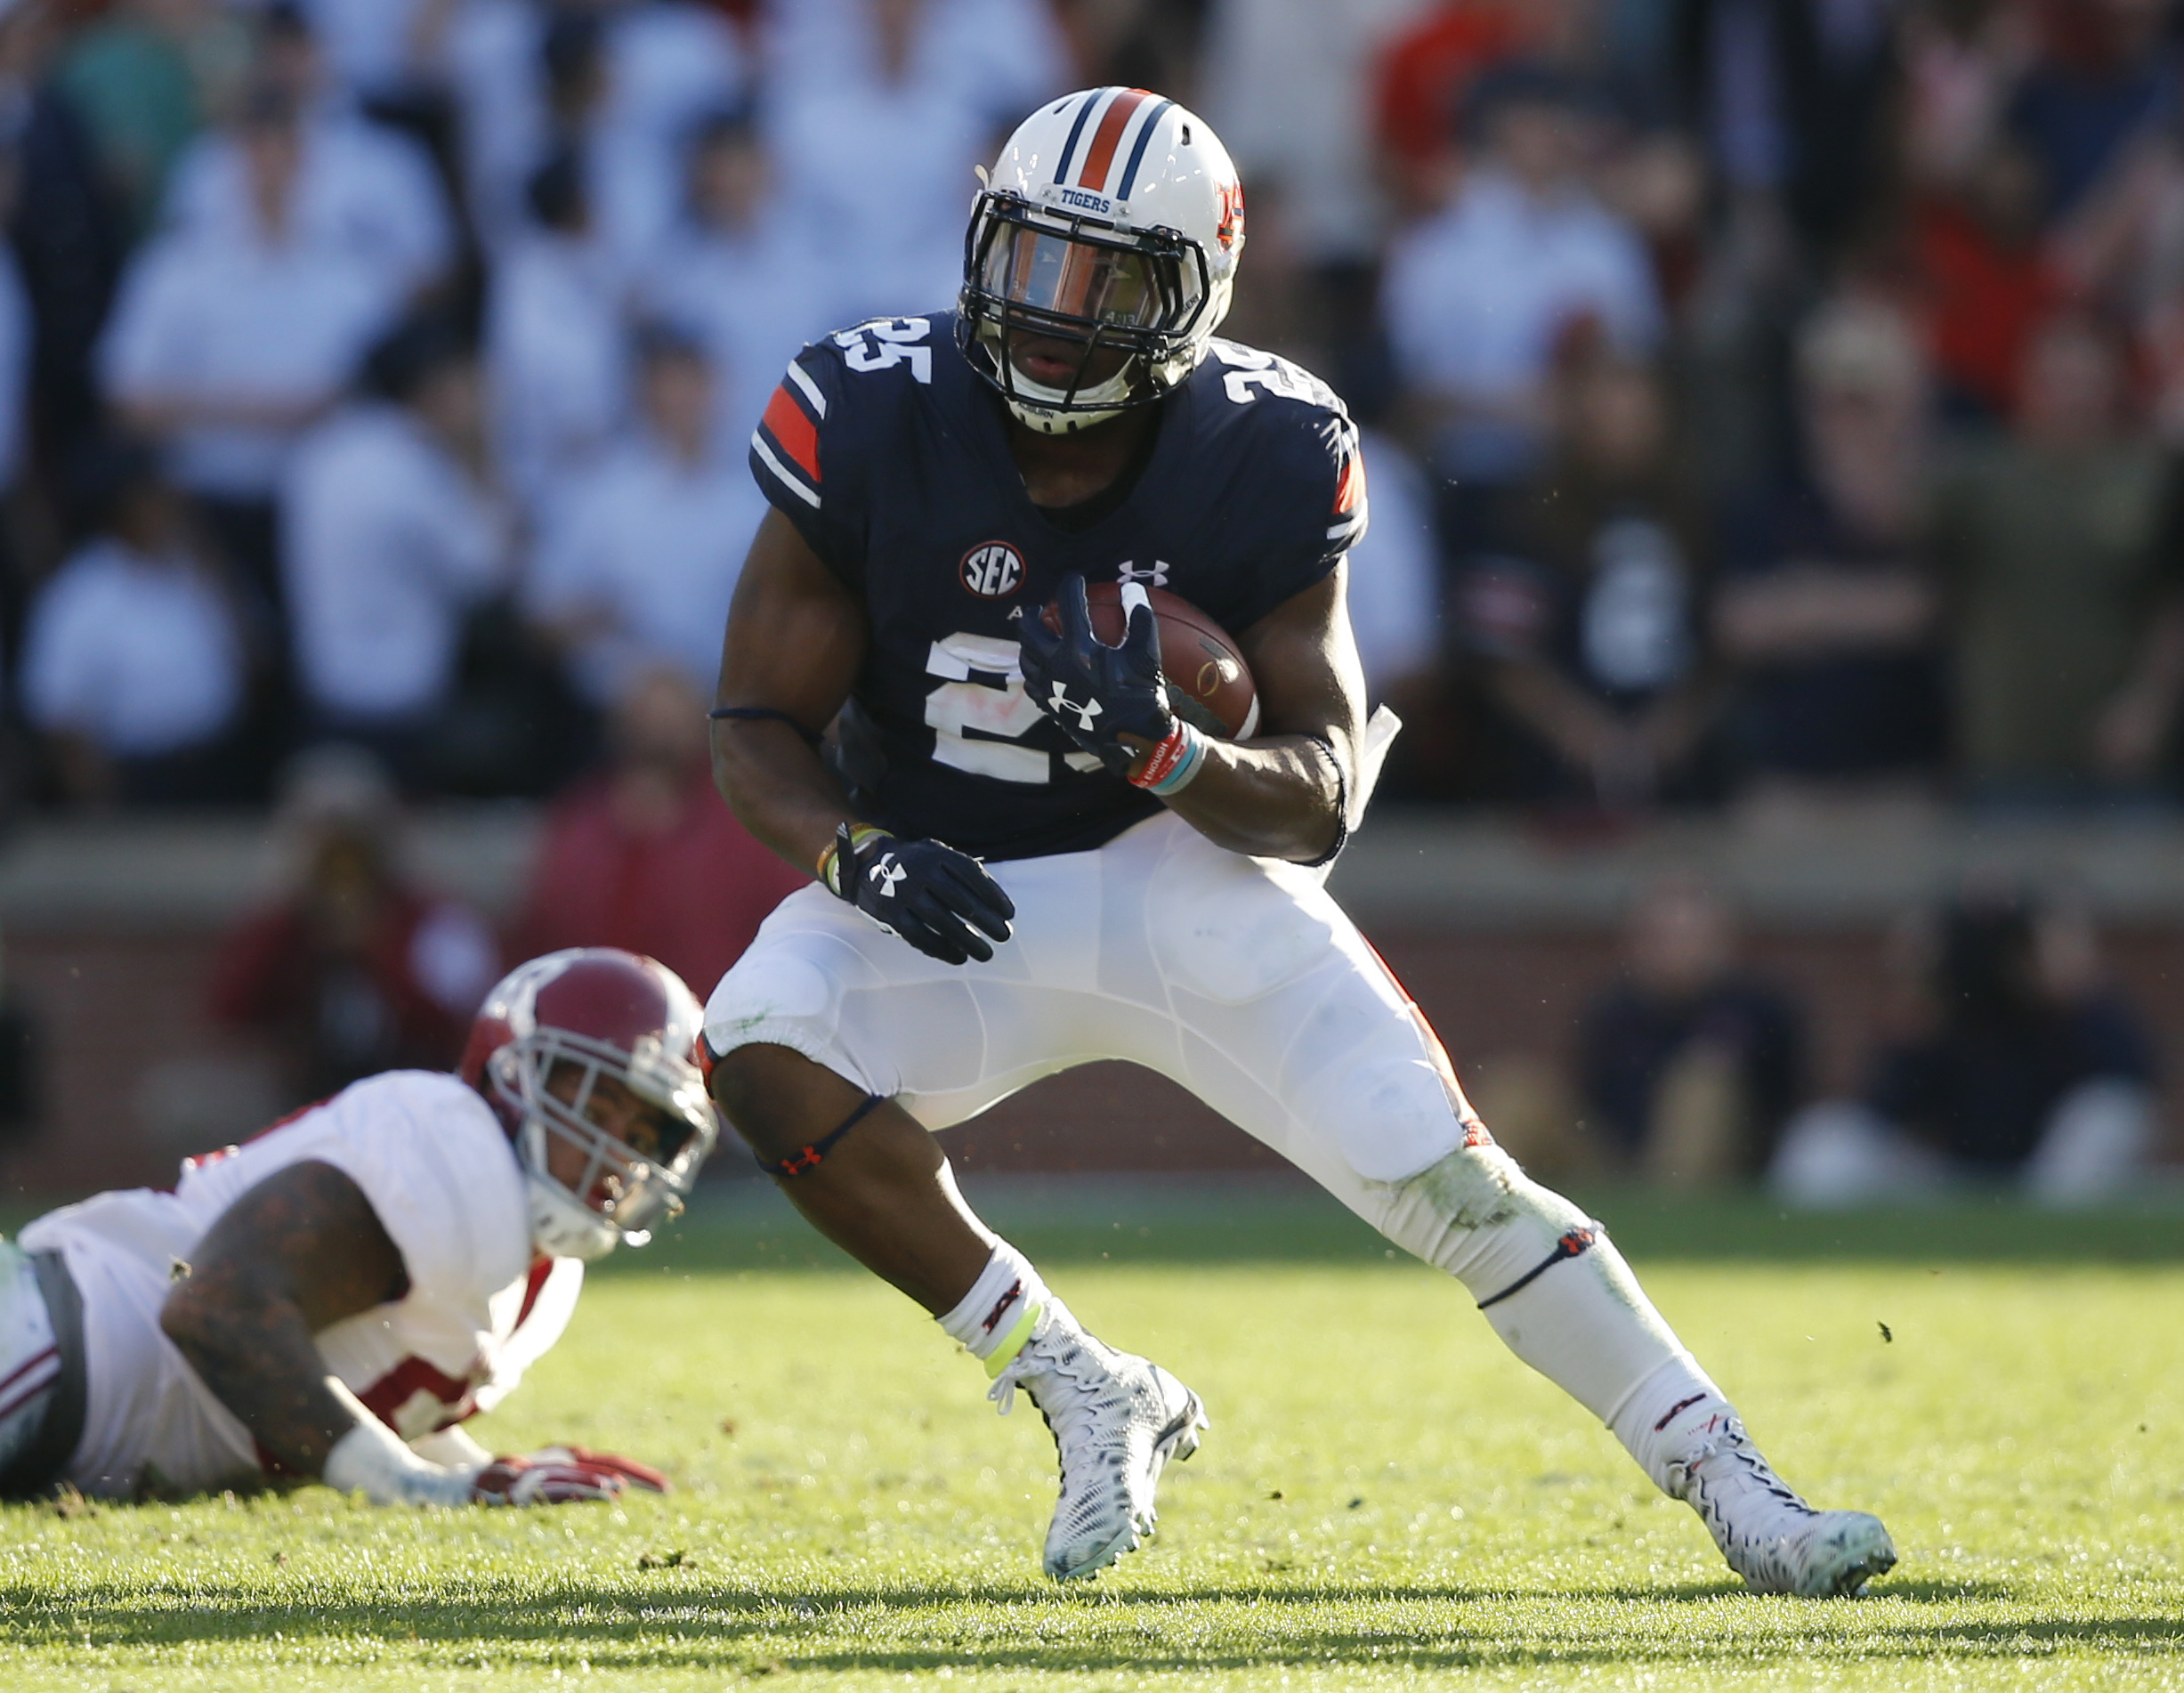 Auburn running back Peyton Barber (25) runs the ball against Alabama defensive lineman D.J. Pettway (57) during an NCAA college football game, Saturday, Nov. 28, 2015, in Auburn, Ala. (AP Photo/Gerald Herbert)